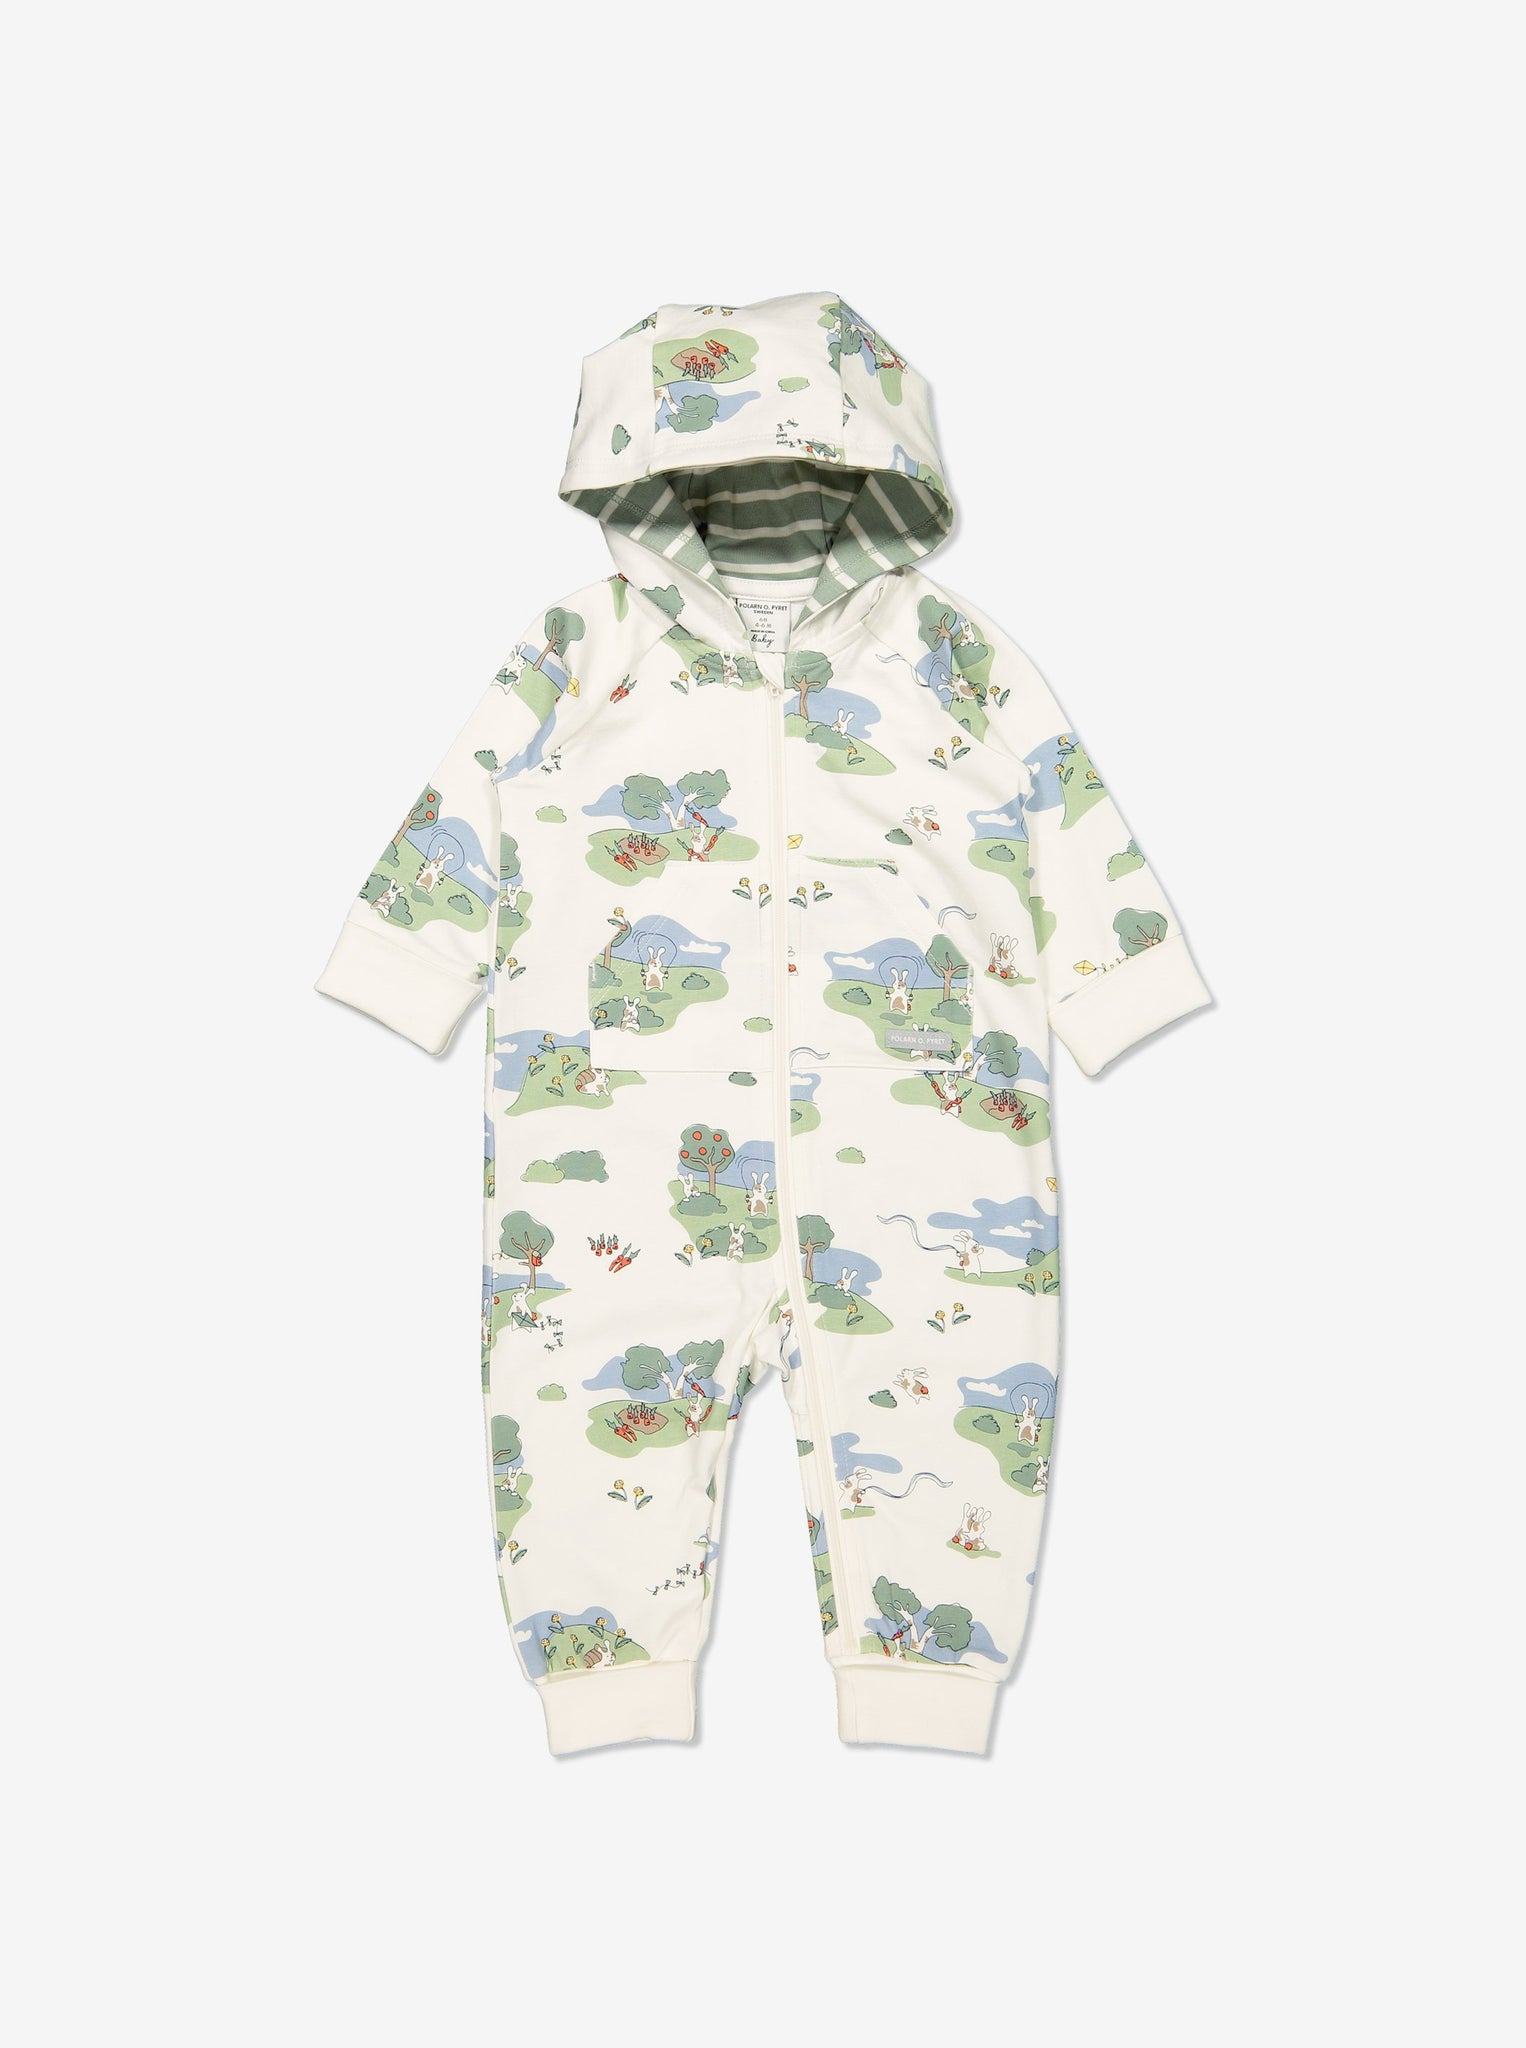 Newborn baby onsie with print of bunnies playing in GOTS organic cotton. With cosy lined hood and full-length zip for speedy dressing and foldable ribbed cuffs for growing room